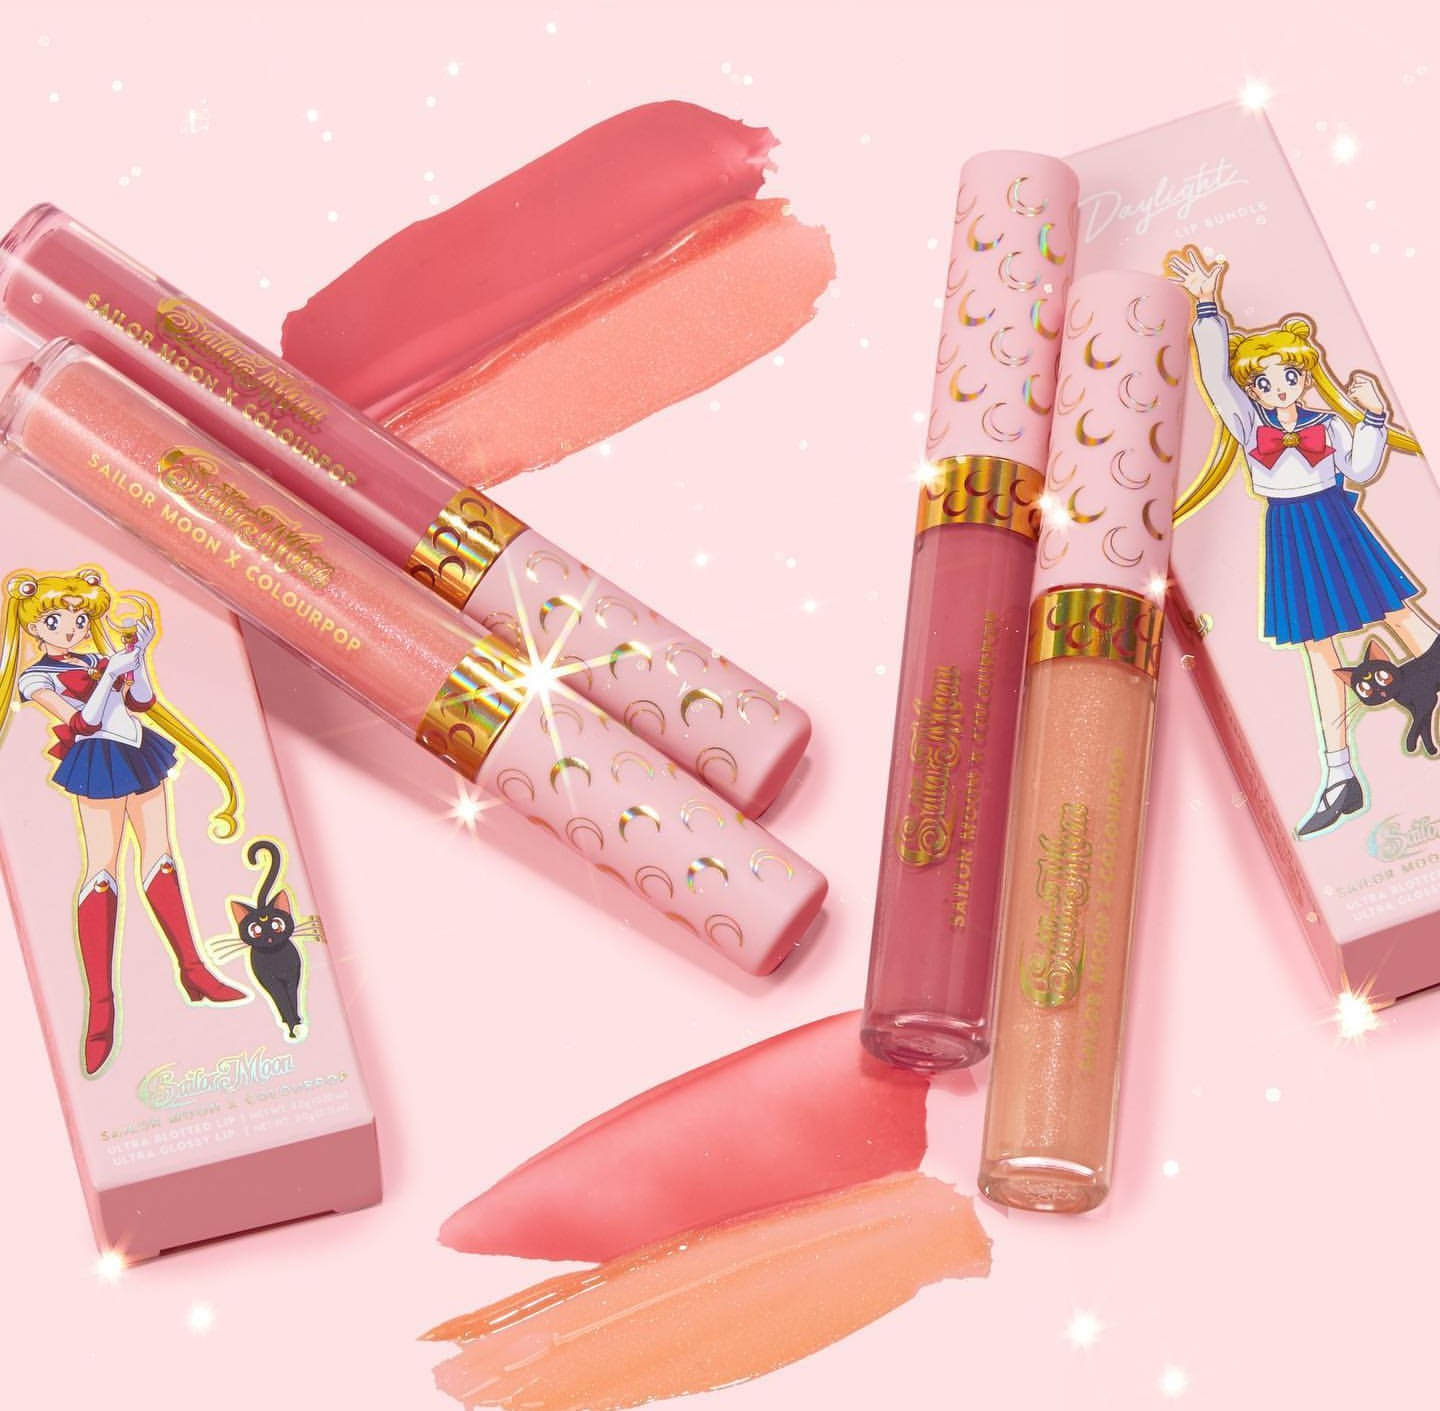 sailor moon, beauty, and pink image